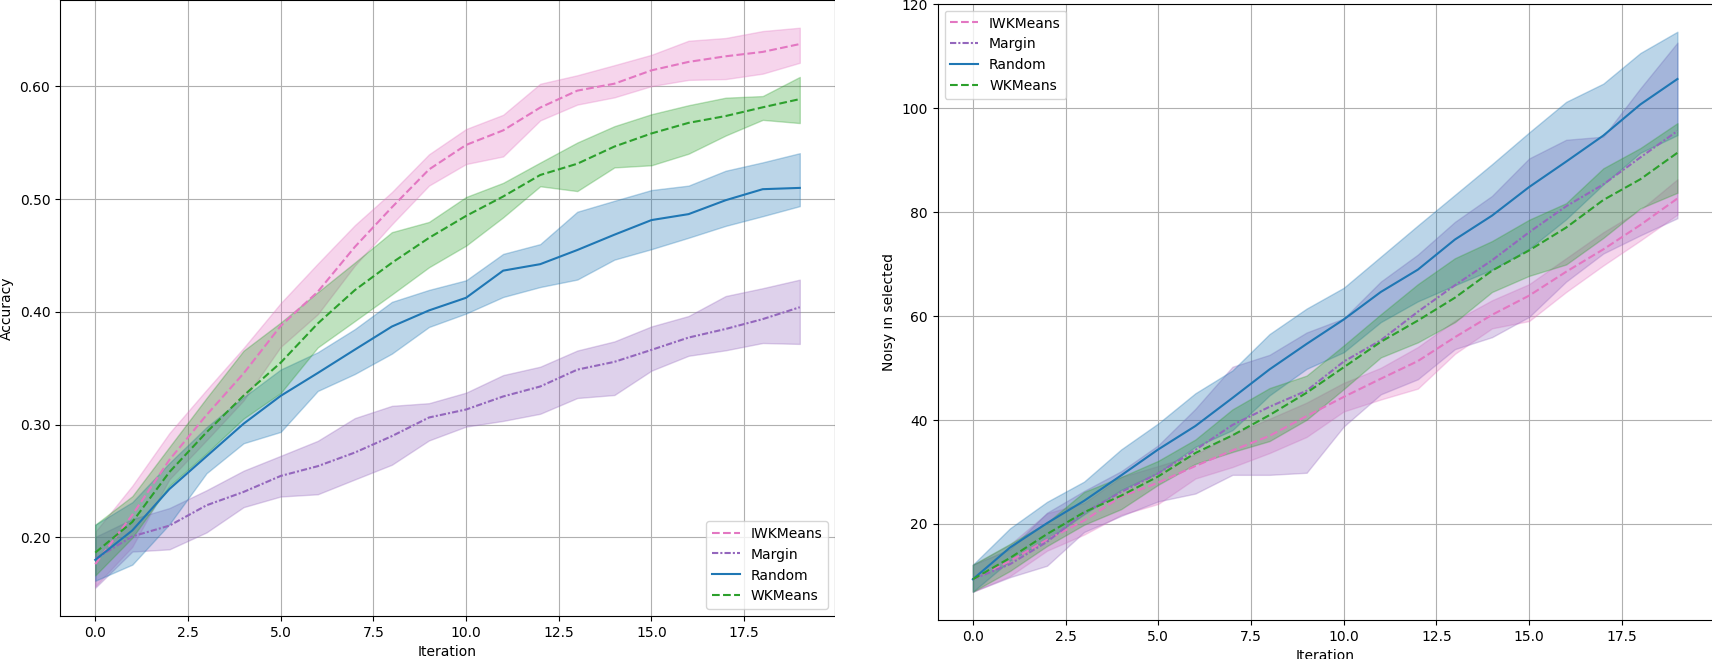 Accuracy on a synthetic dataset with 2 features, 10 classes, and 10,000 samples, of which 50% are noisy.